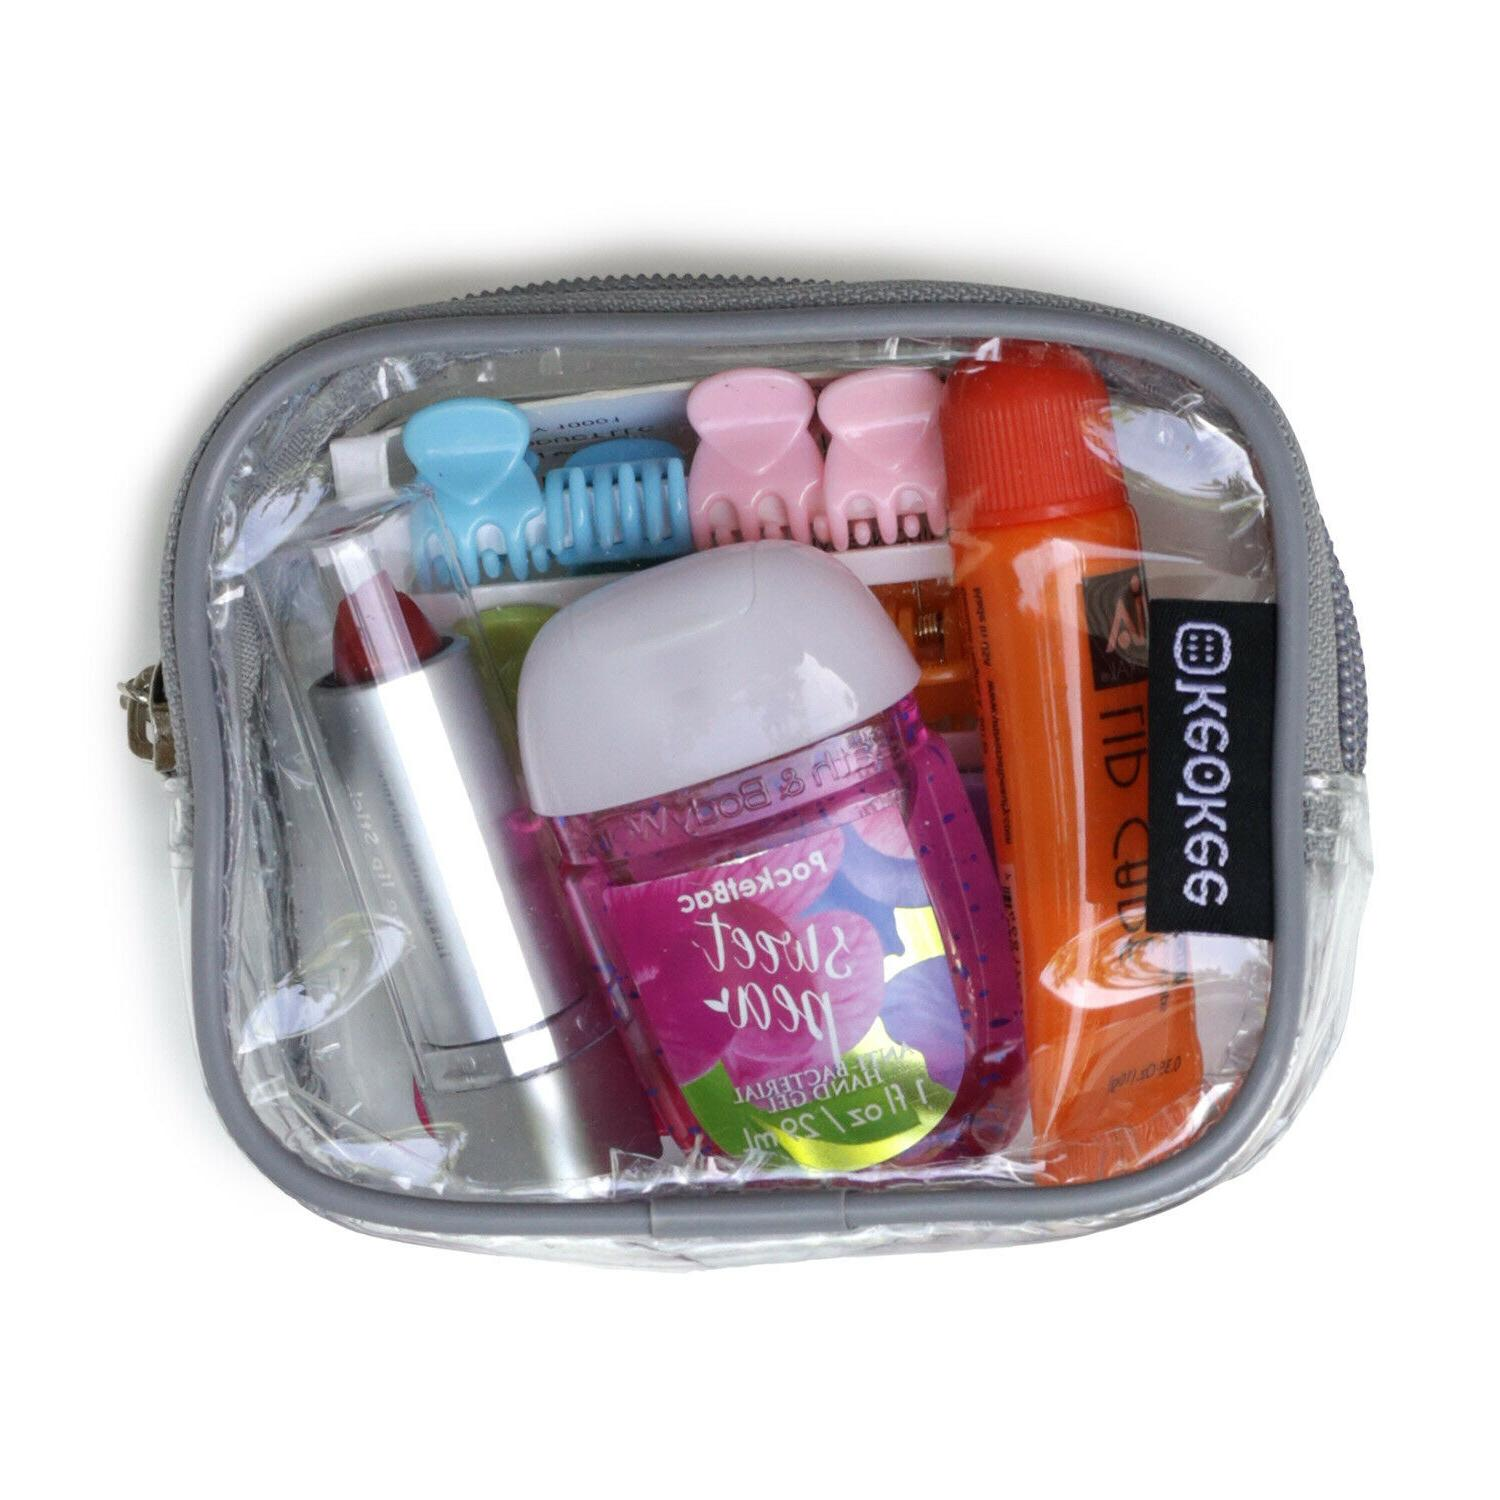 Small Cosmetics and Case Travel Organizing